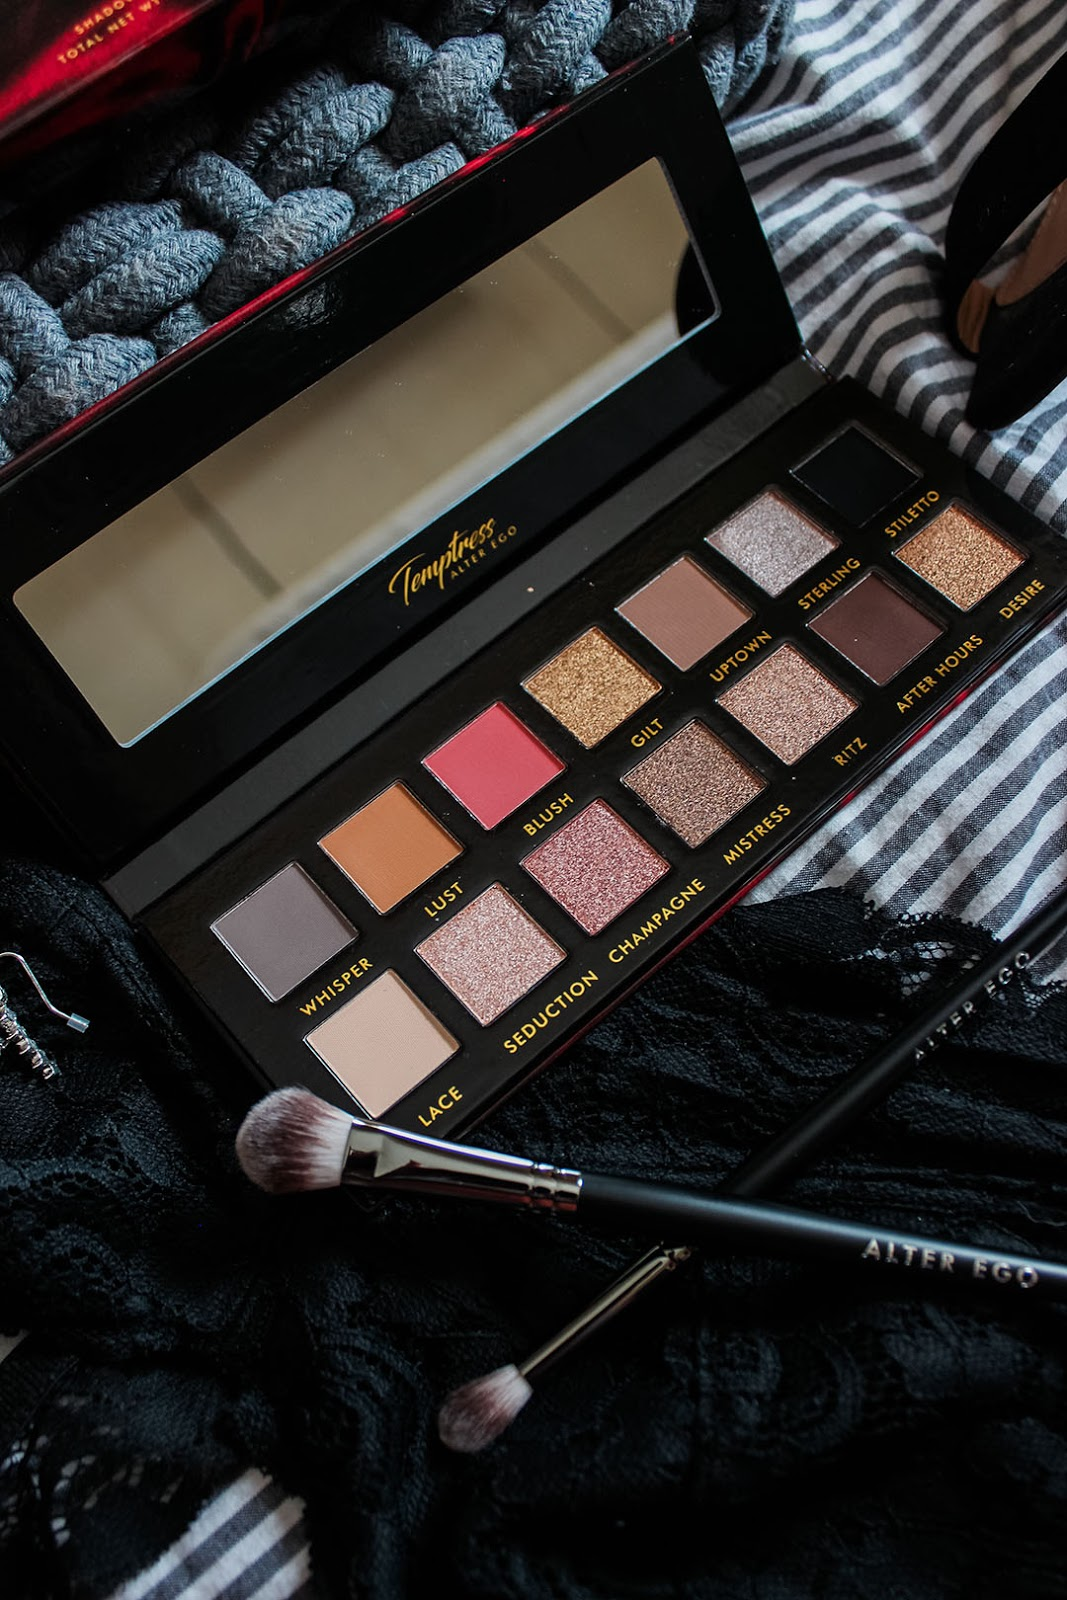 Gettin' Sultry w/ the Alter Ego Temptress Palette | XO